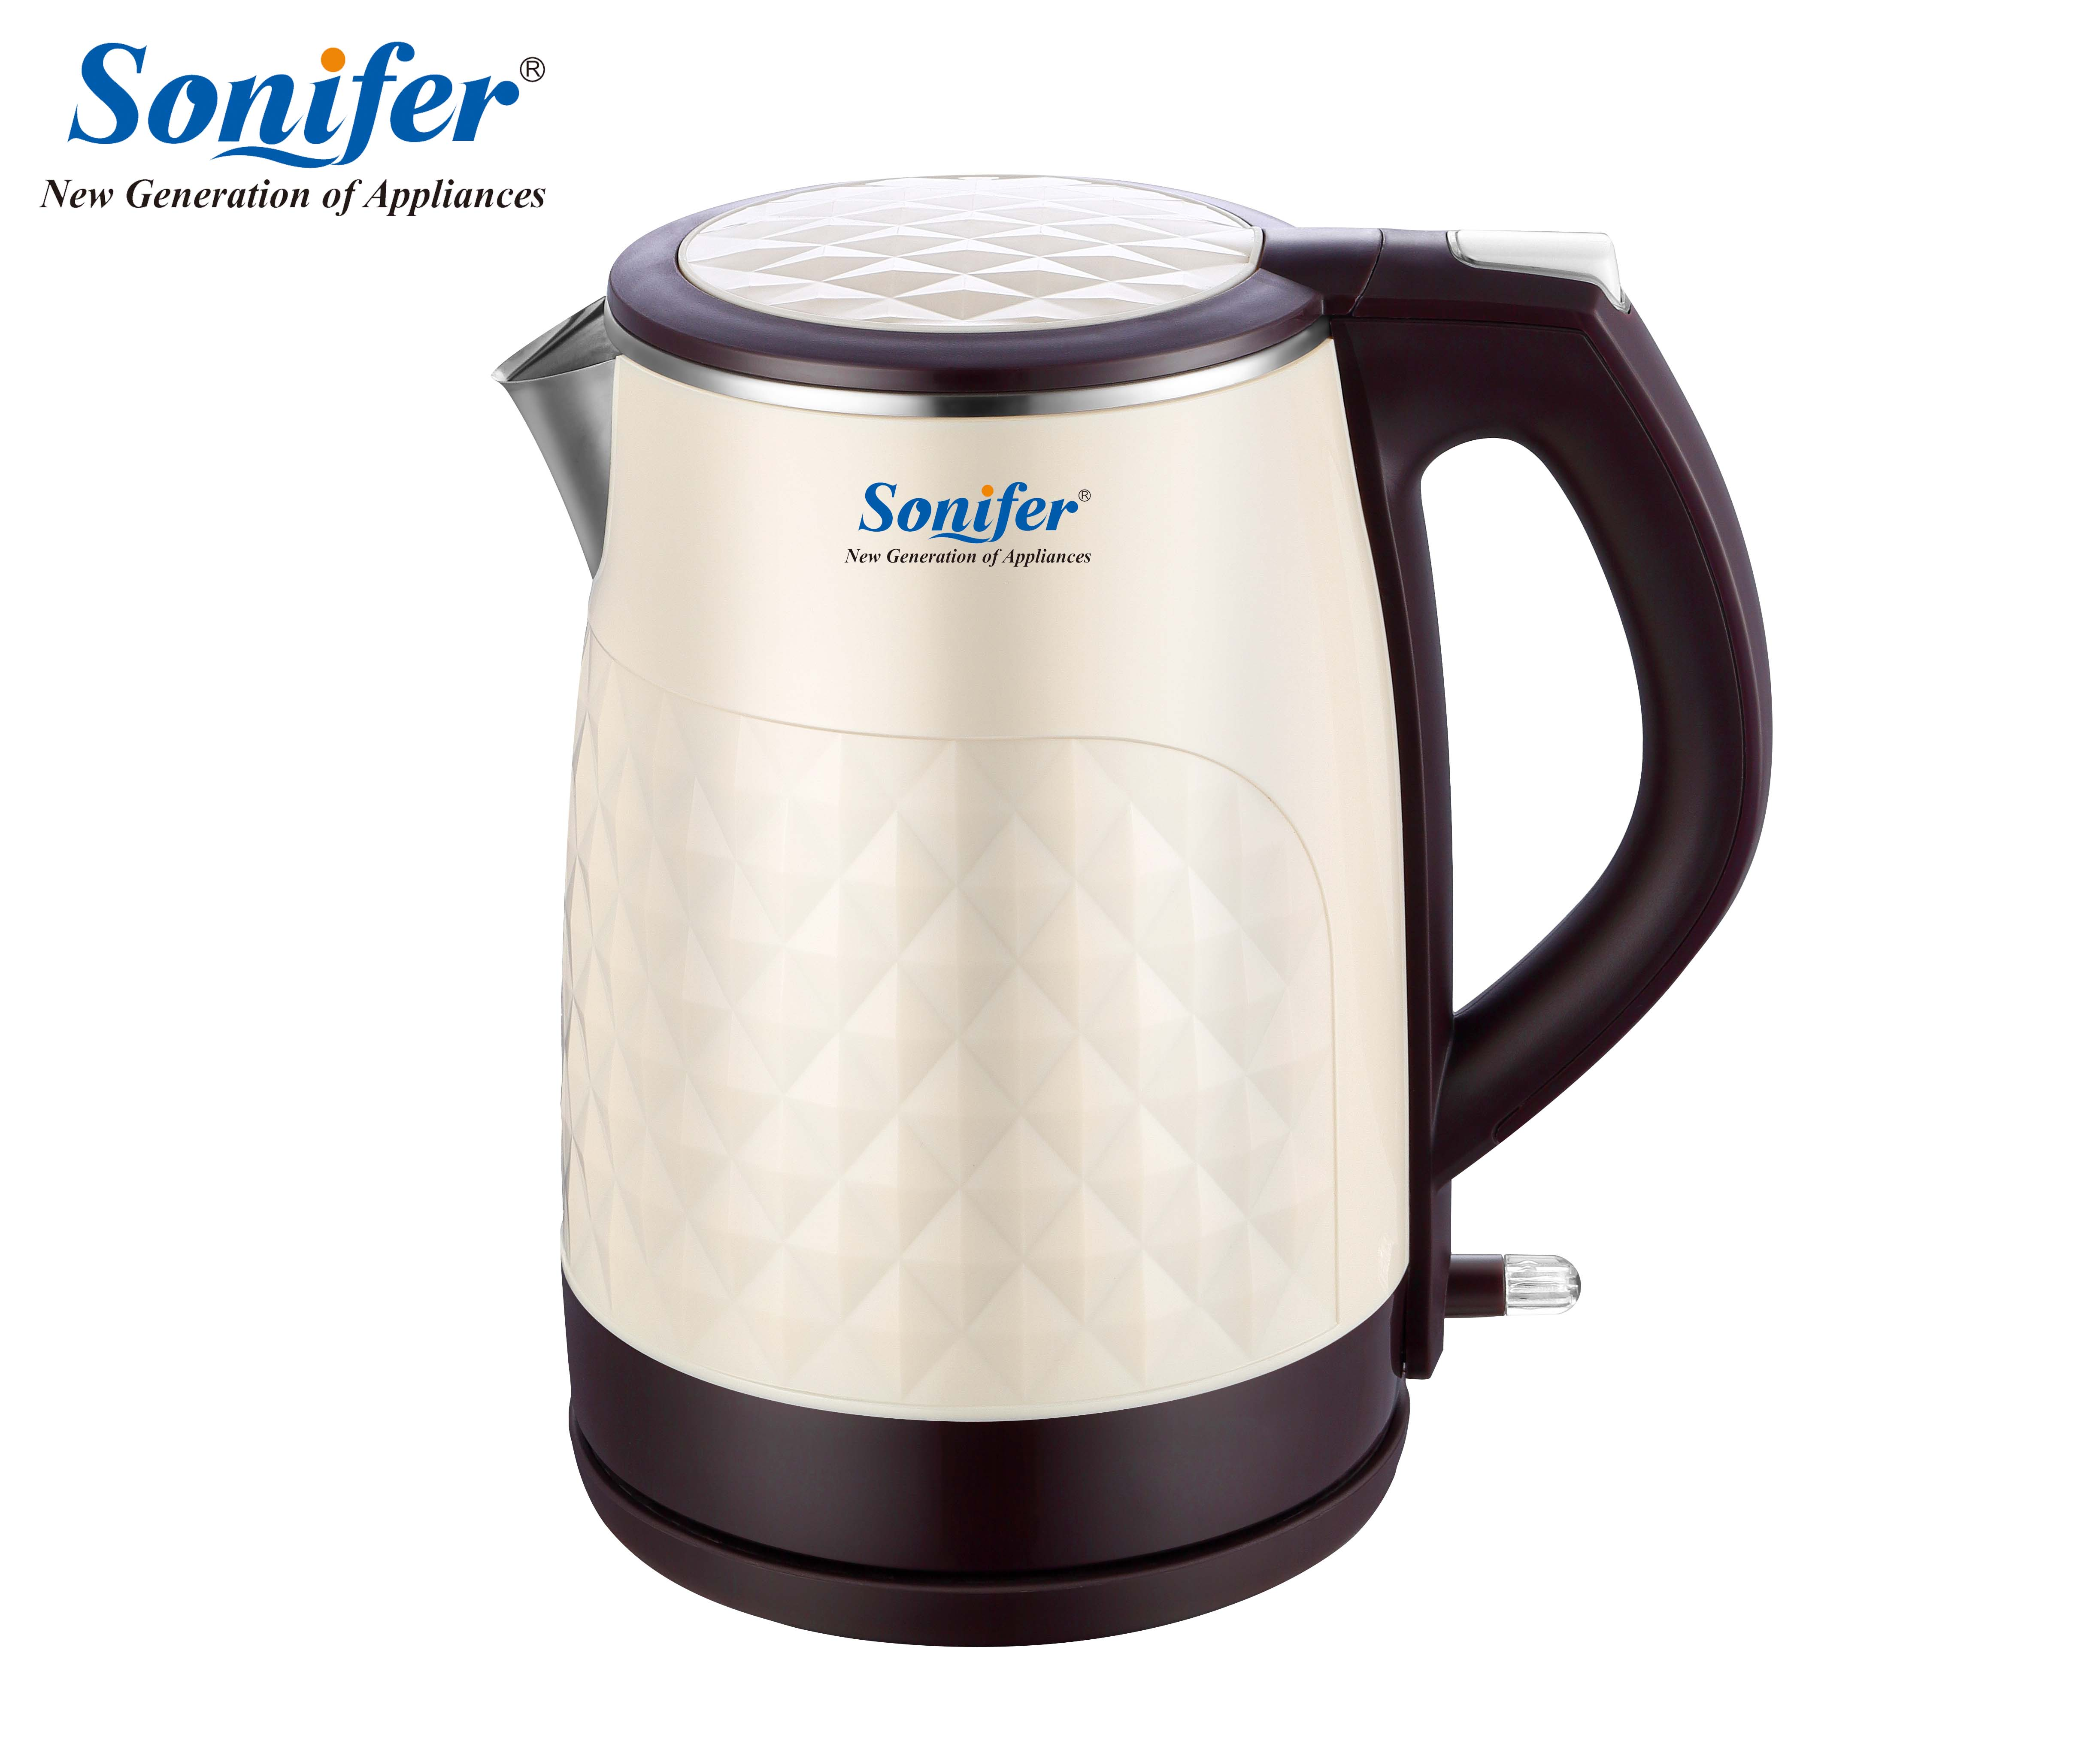 1.8L 304 stainless steel Electric Kettle 1850W Household Quick Heating Electric Boiling Pot Sonifer electric kettle boiling pot food grade 304 stainless steel 1 5 l fashion product